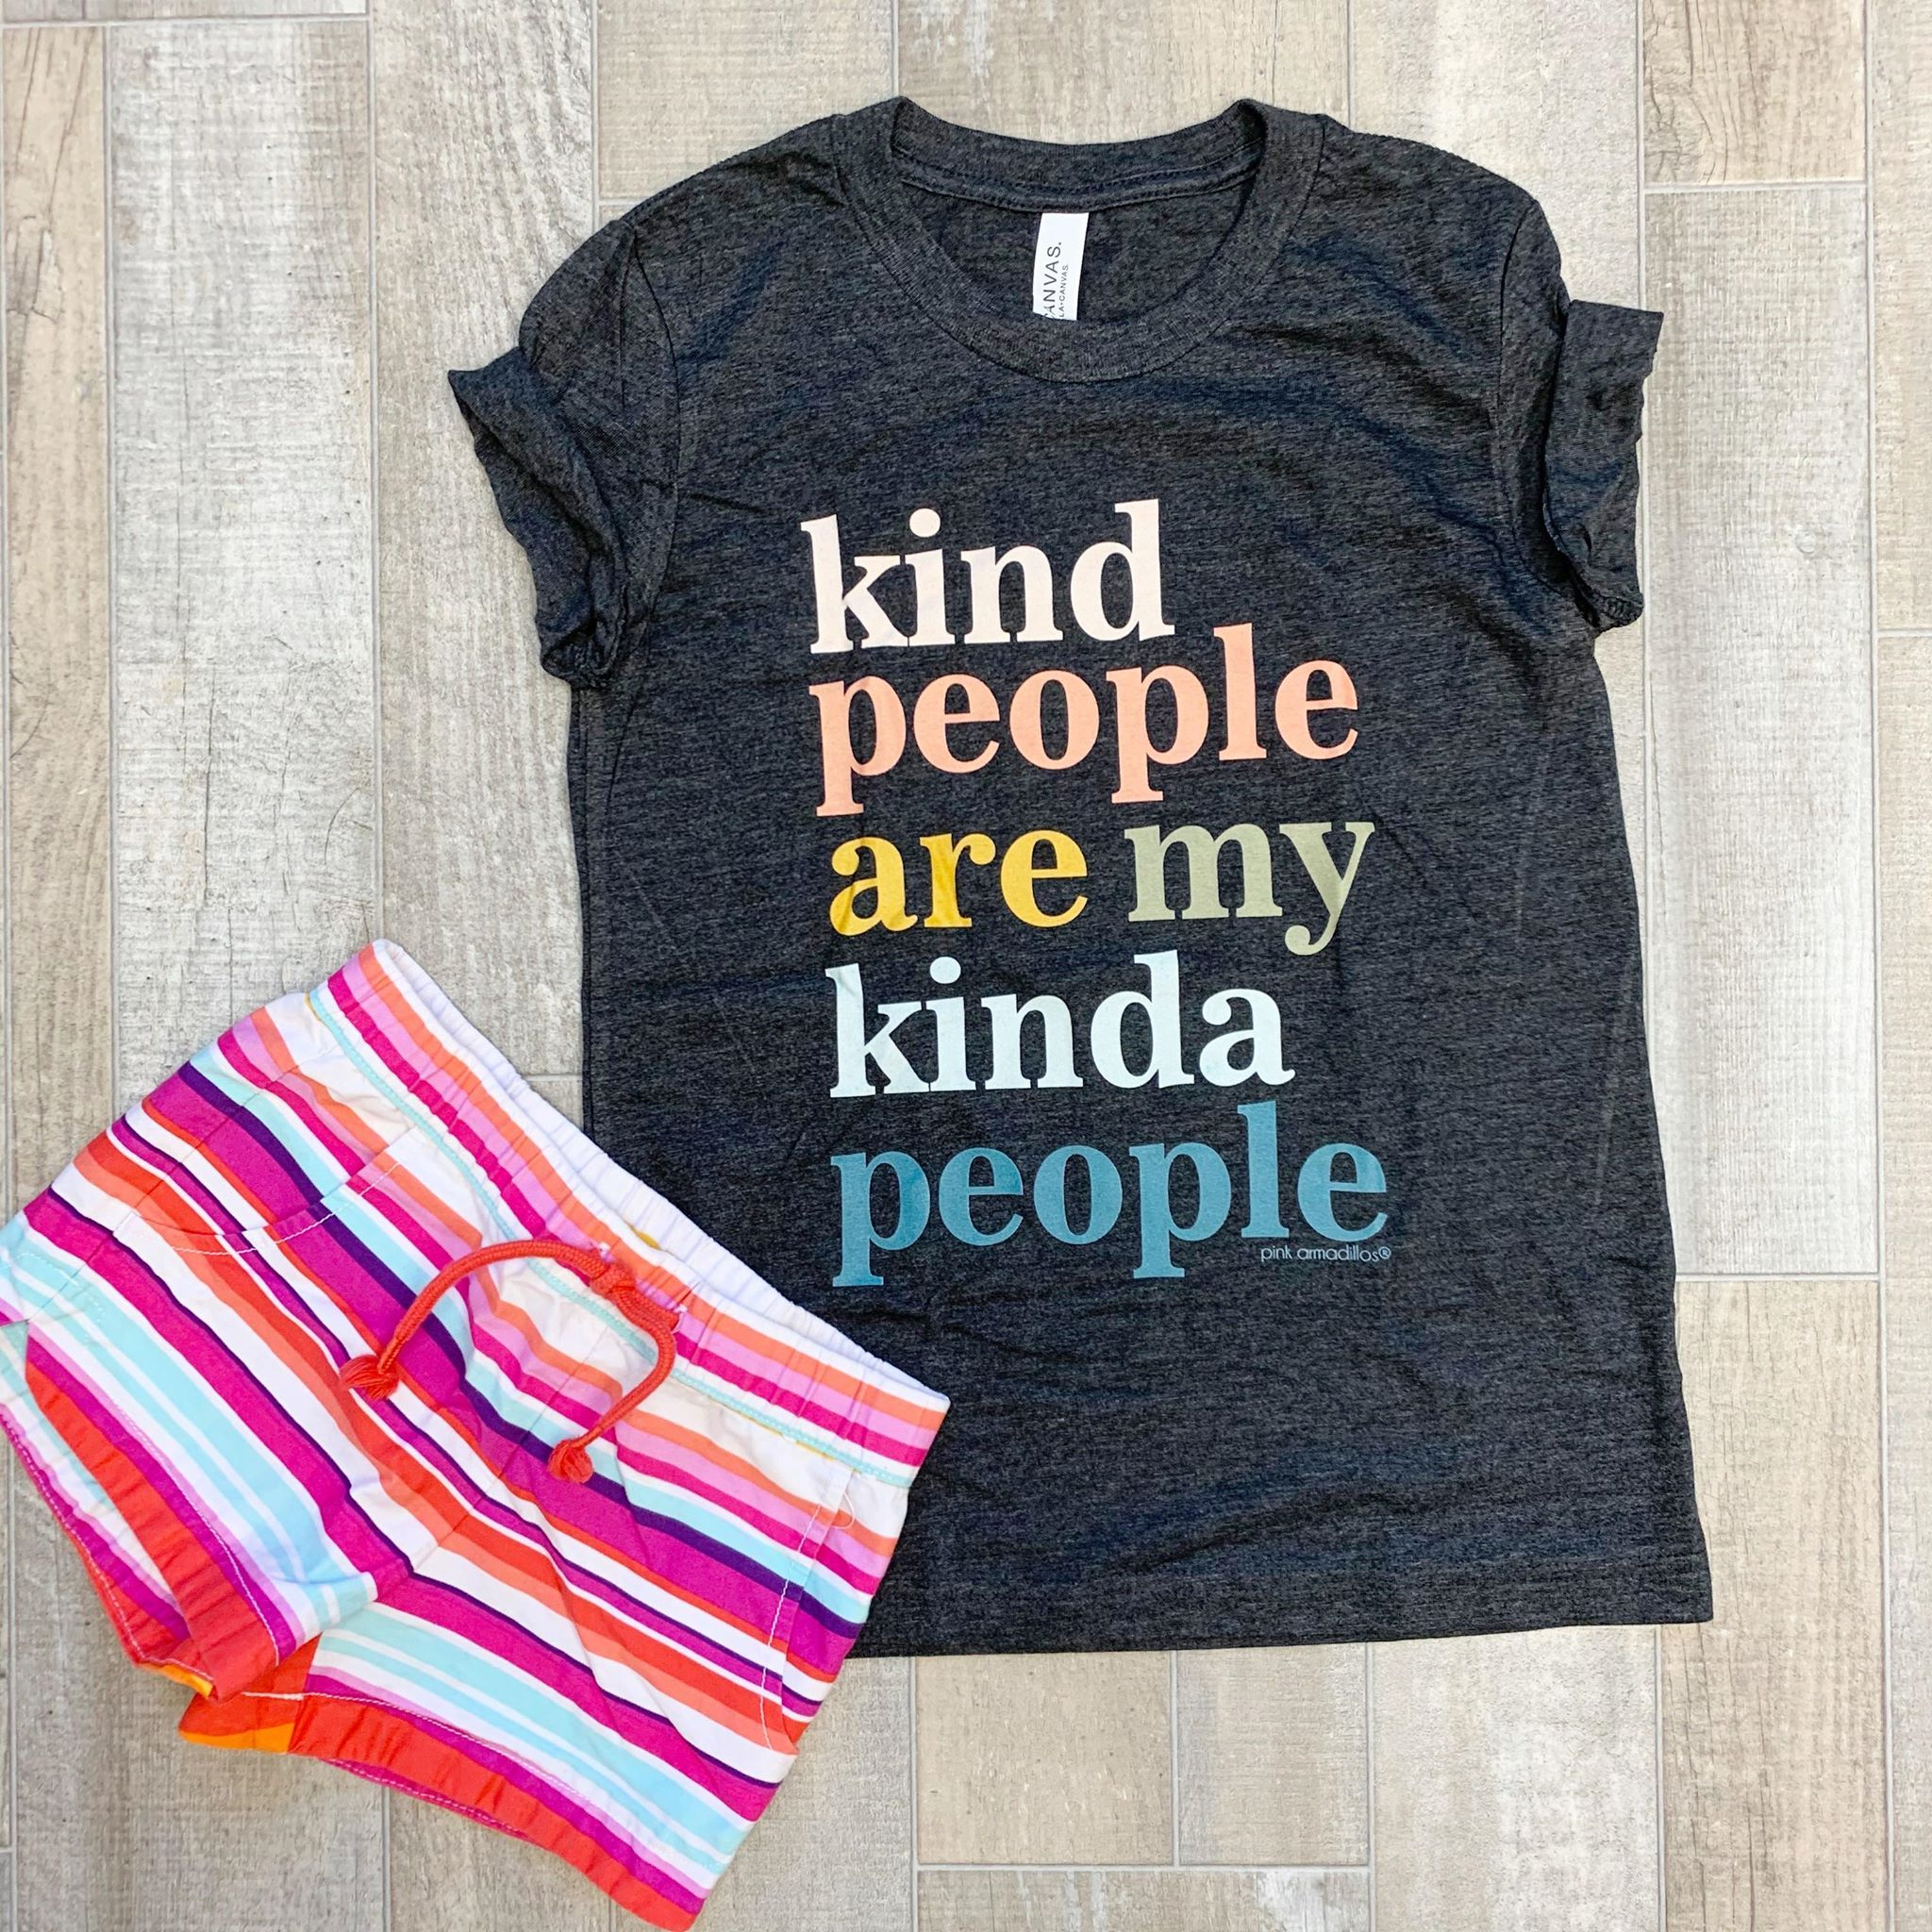 Youth 'Kind People Are My Kinda People' Short Sleeve Tee - Youth Small (6-8)